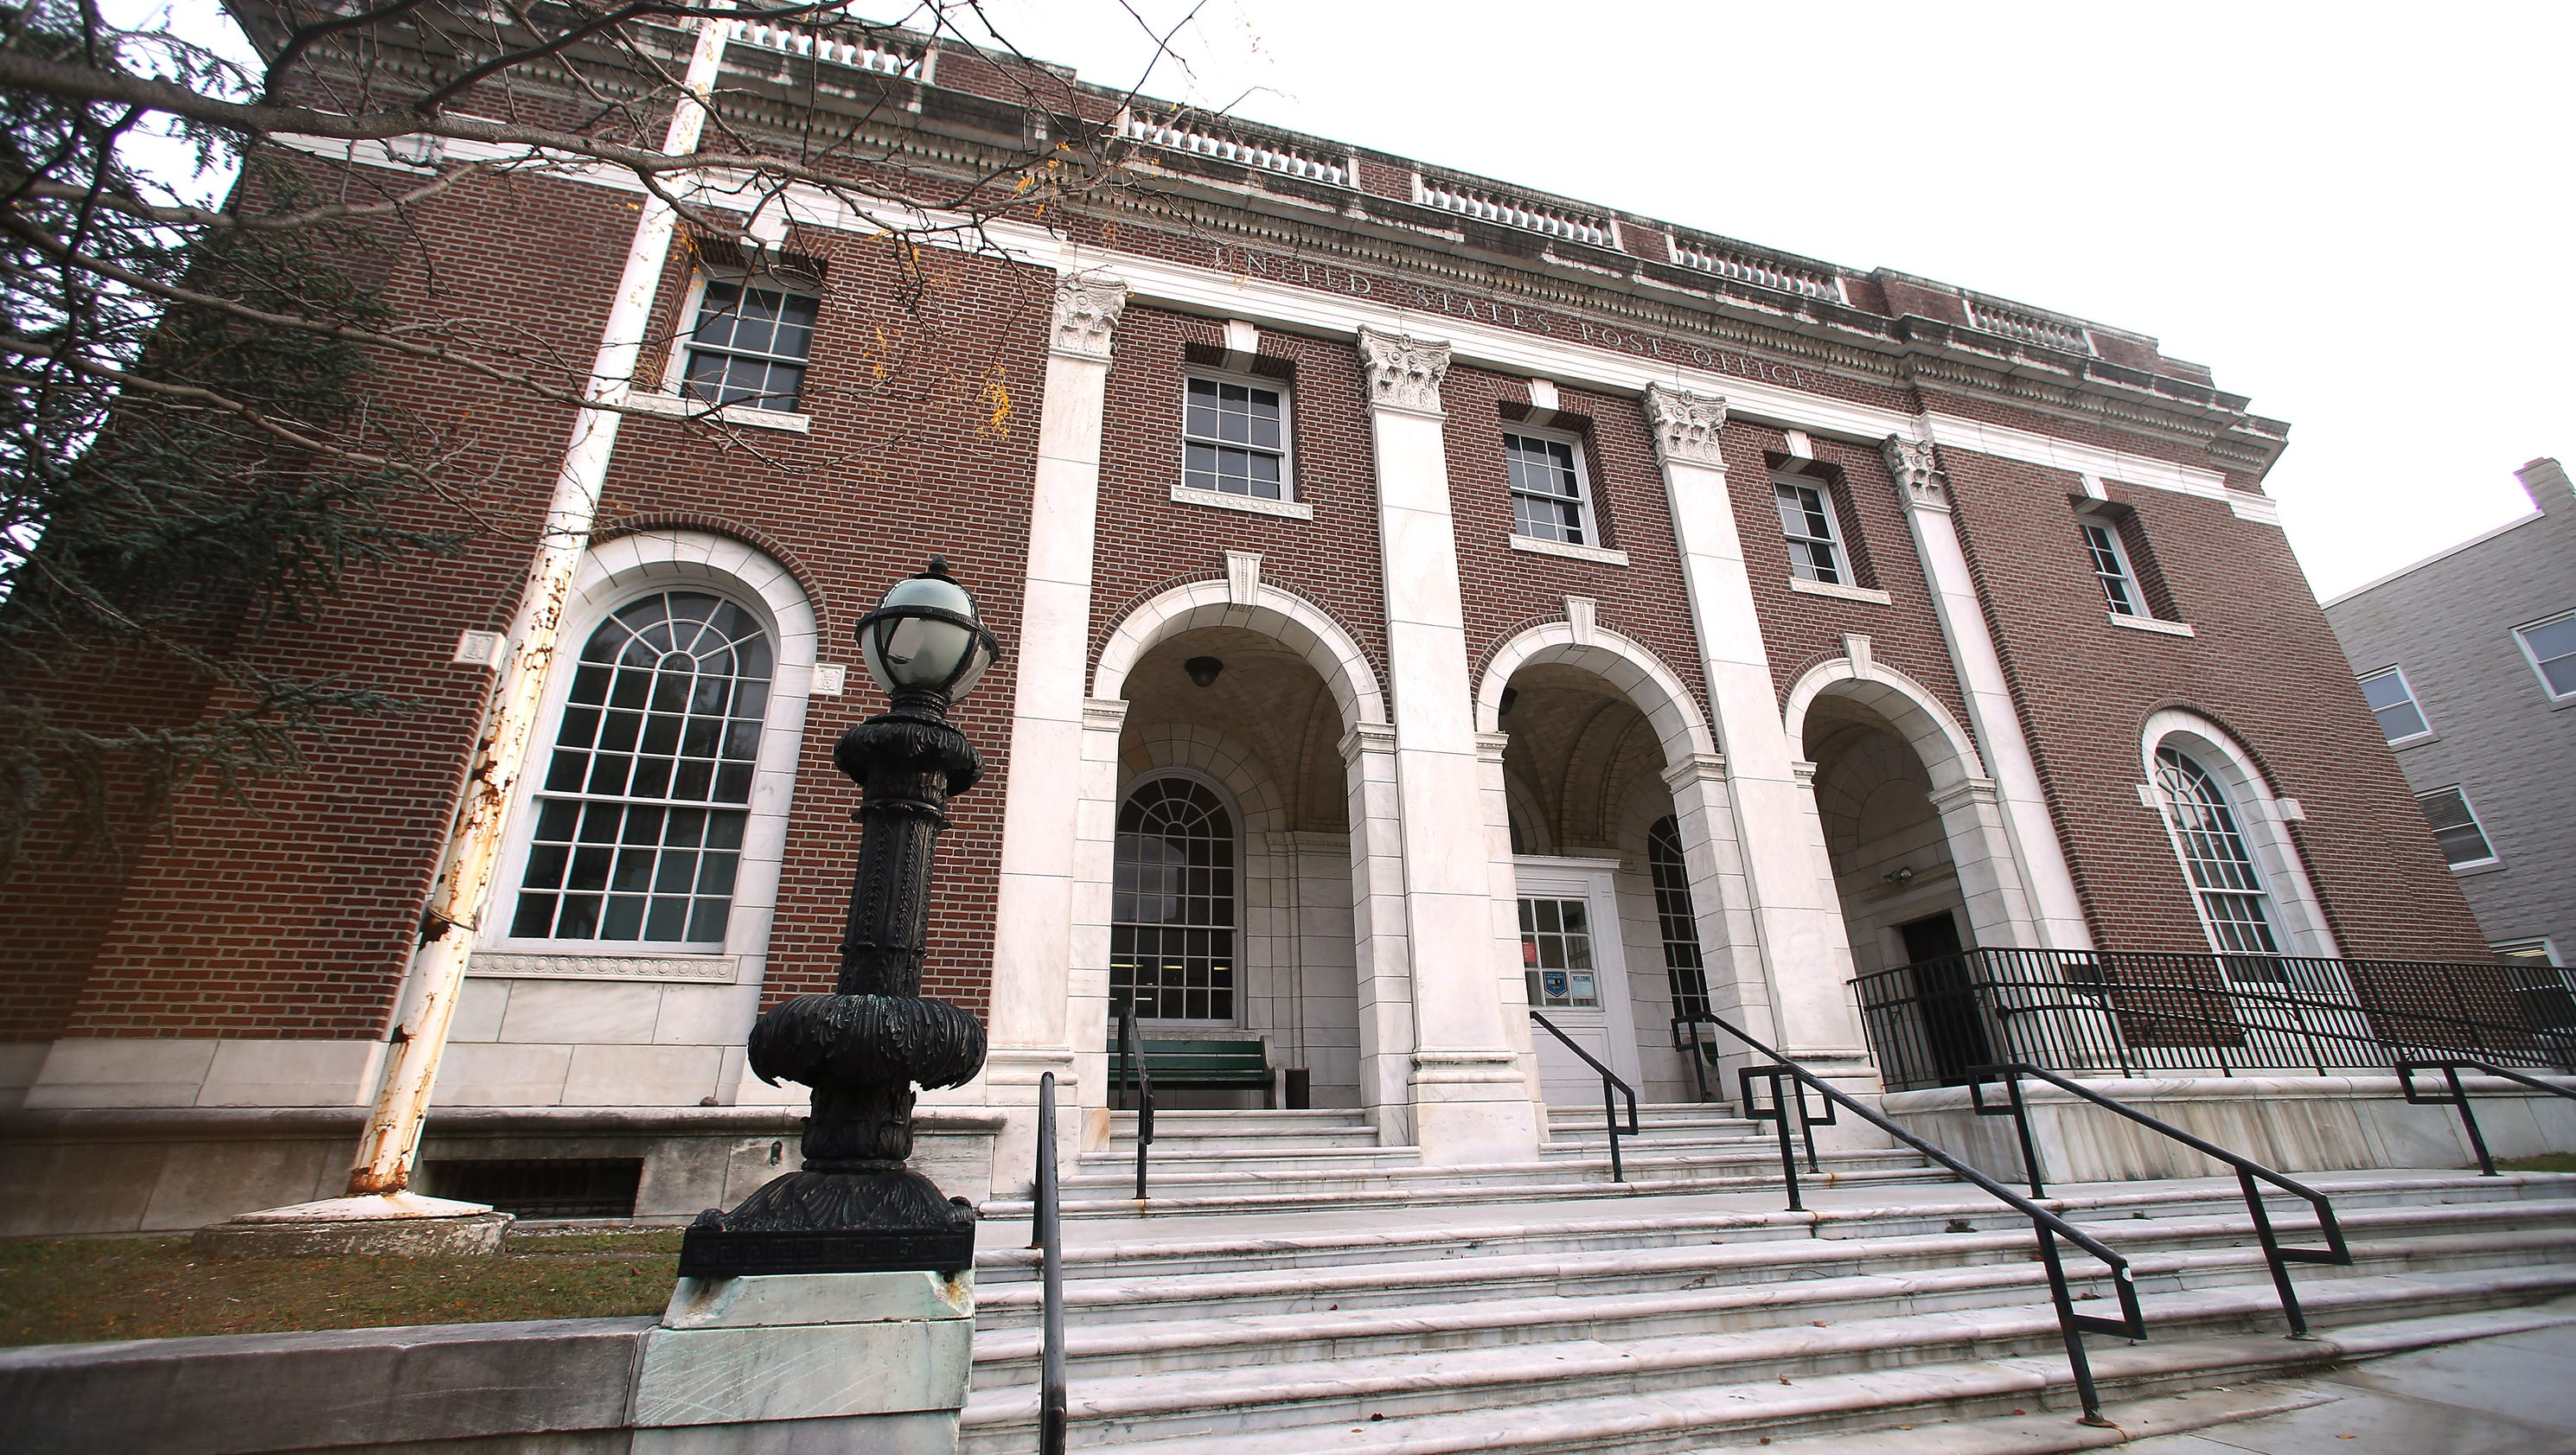 Postal Service Want To Sell Morristown Post Office